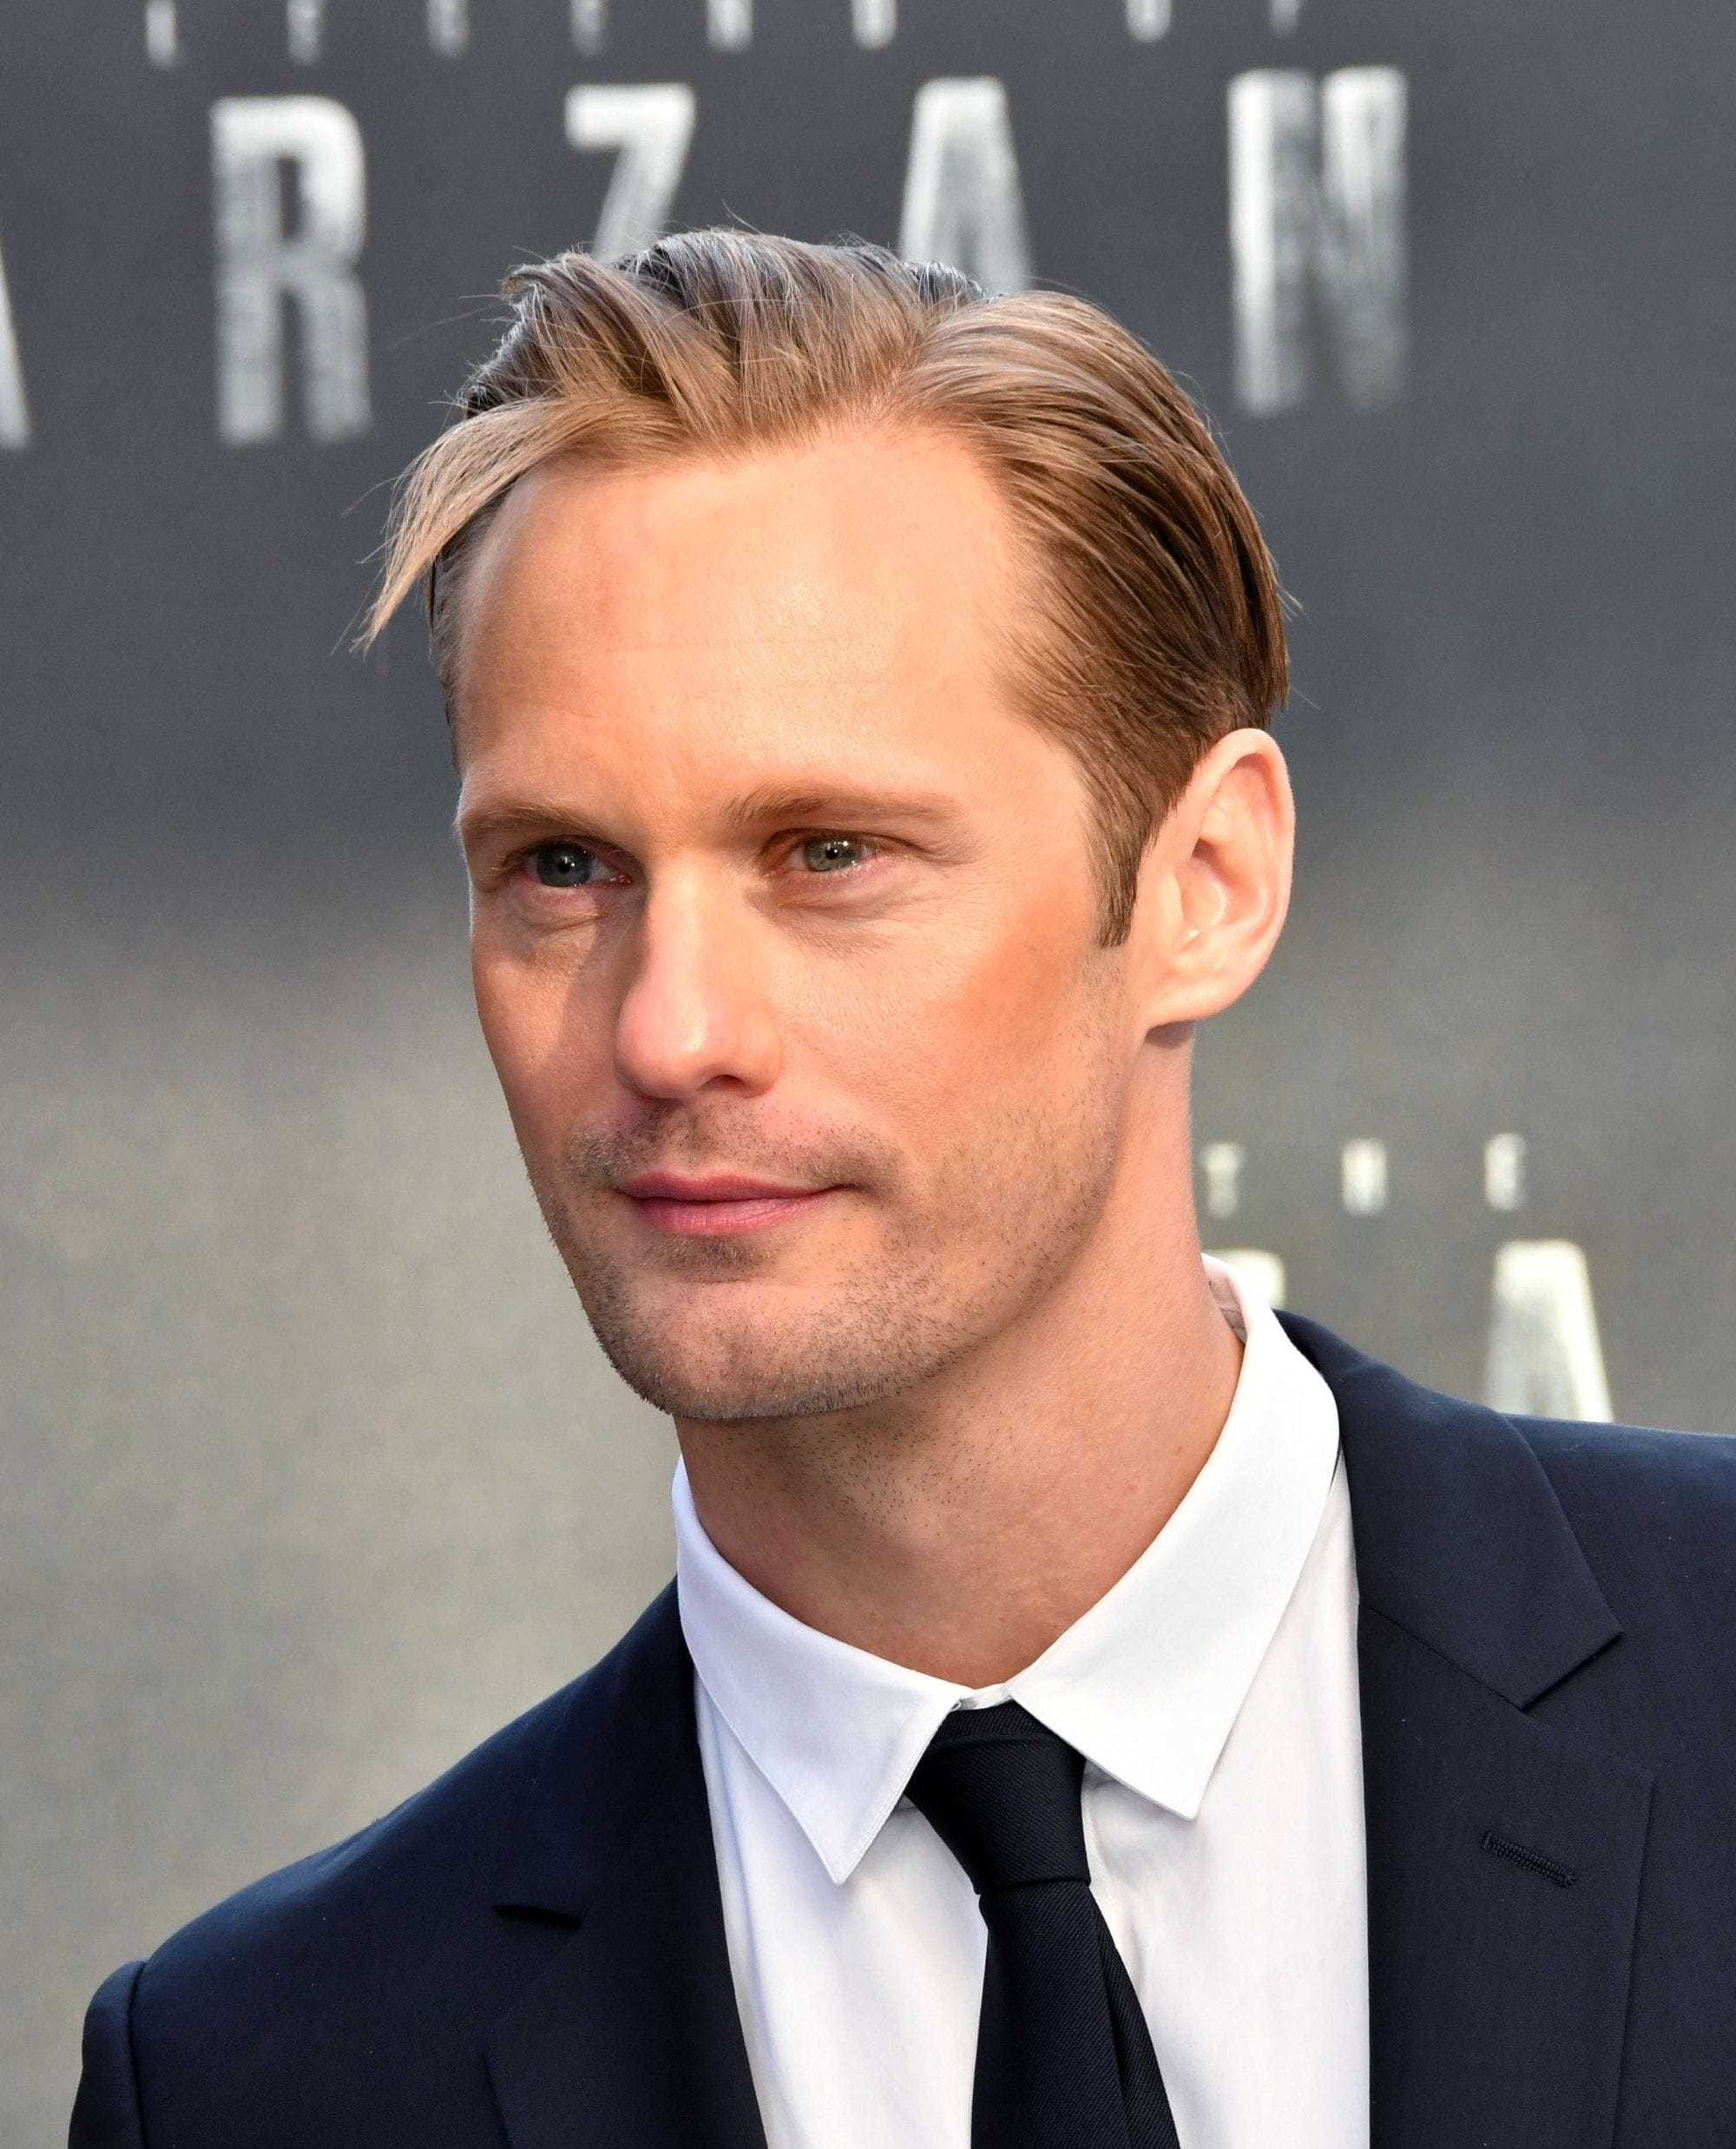 12 of the best men's hairstyles for receding hairlines